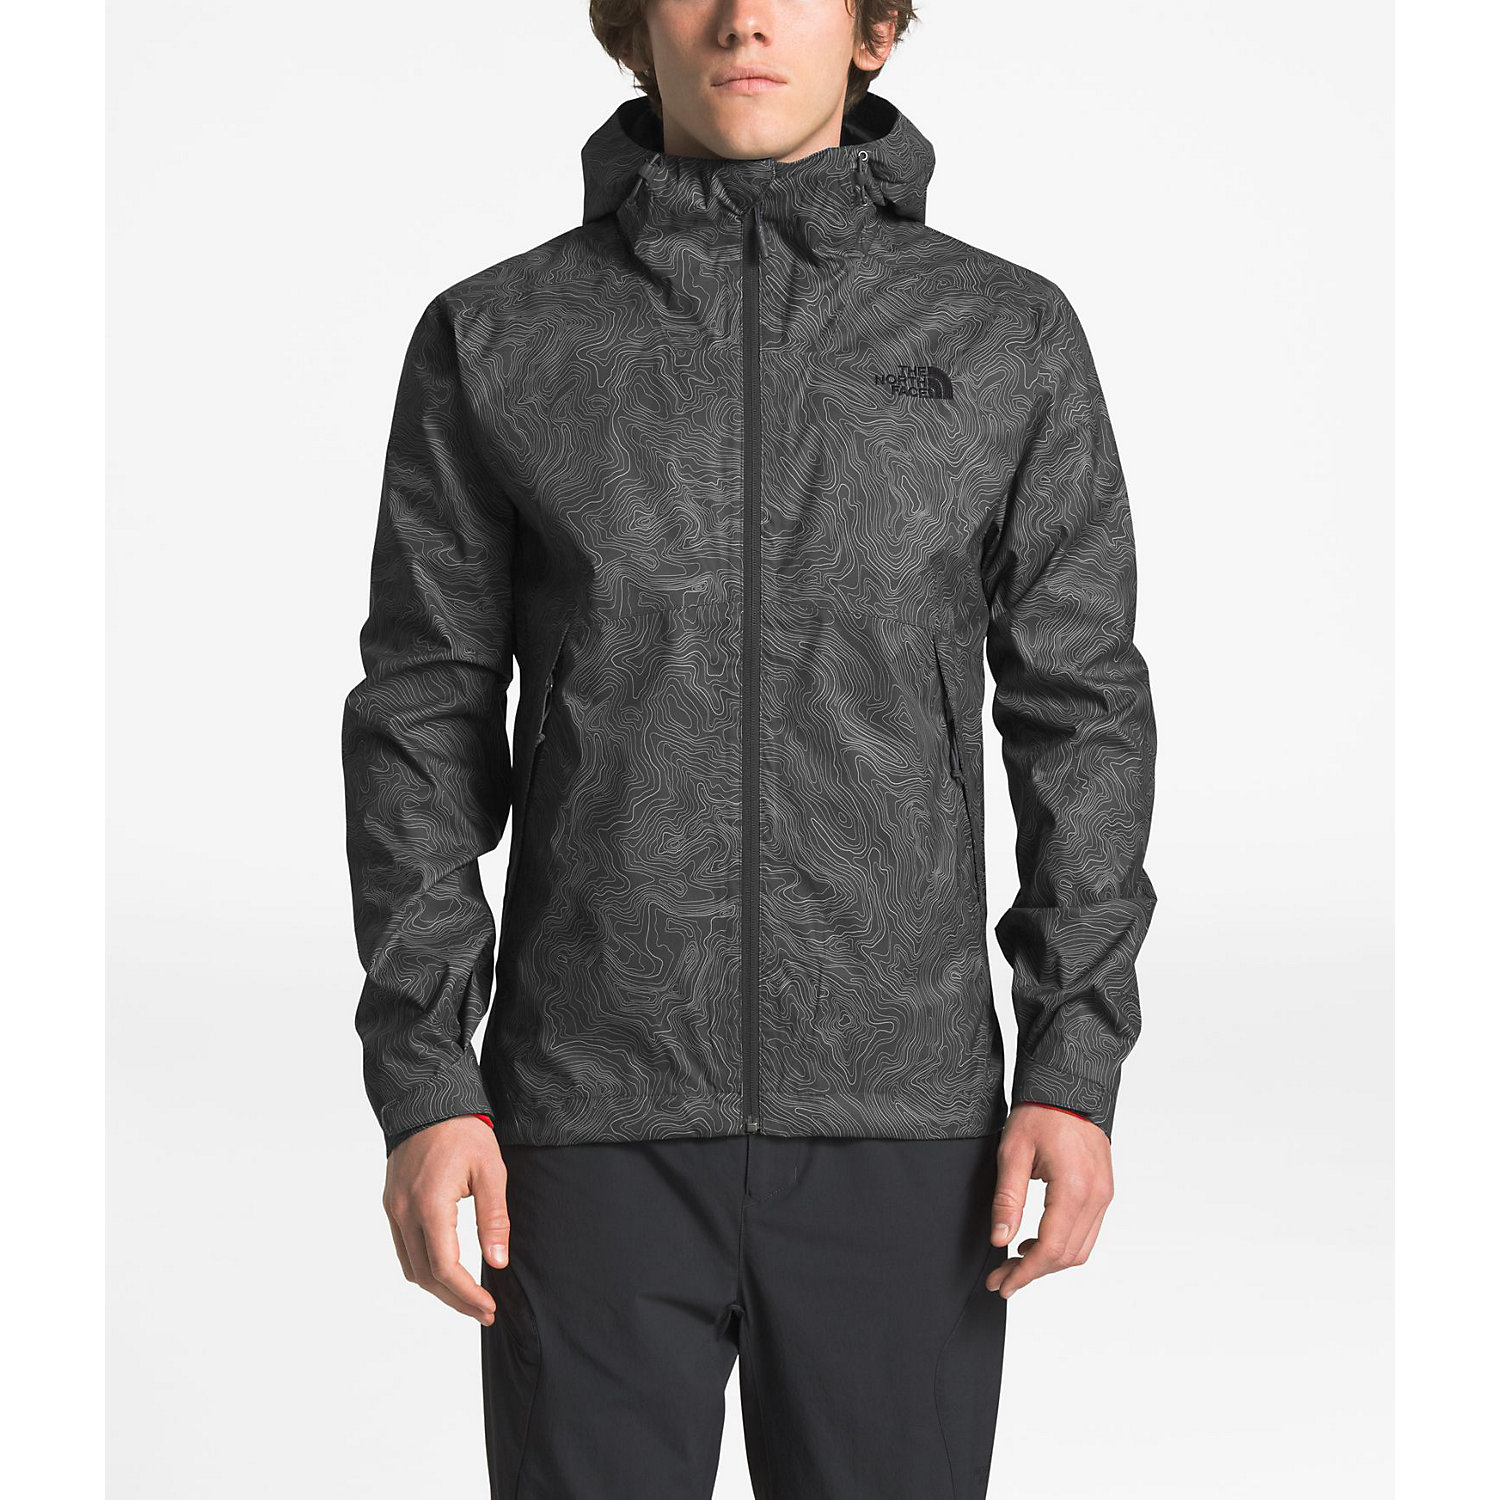 1fadc289e The North Face Men's Millerton Jacket